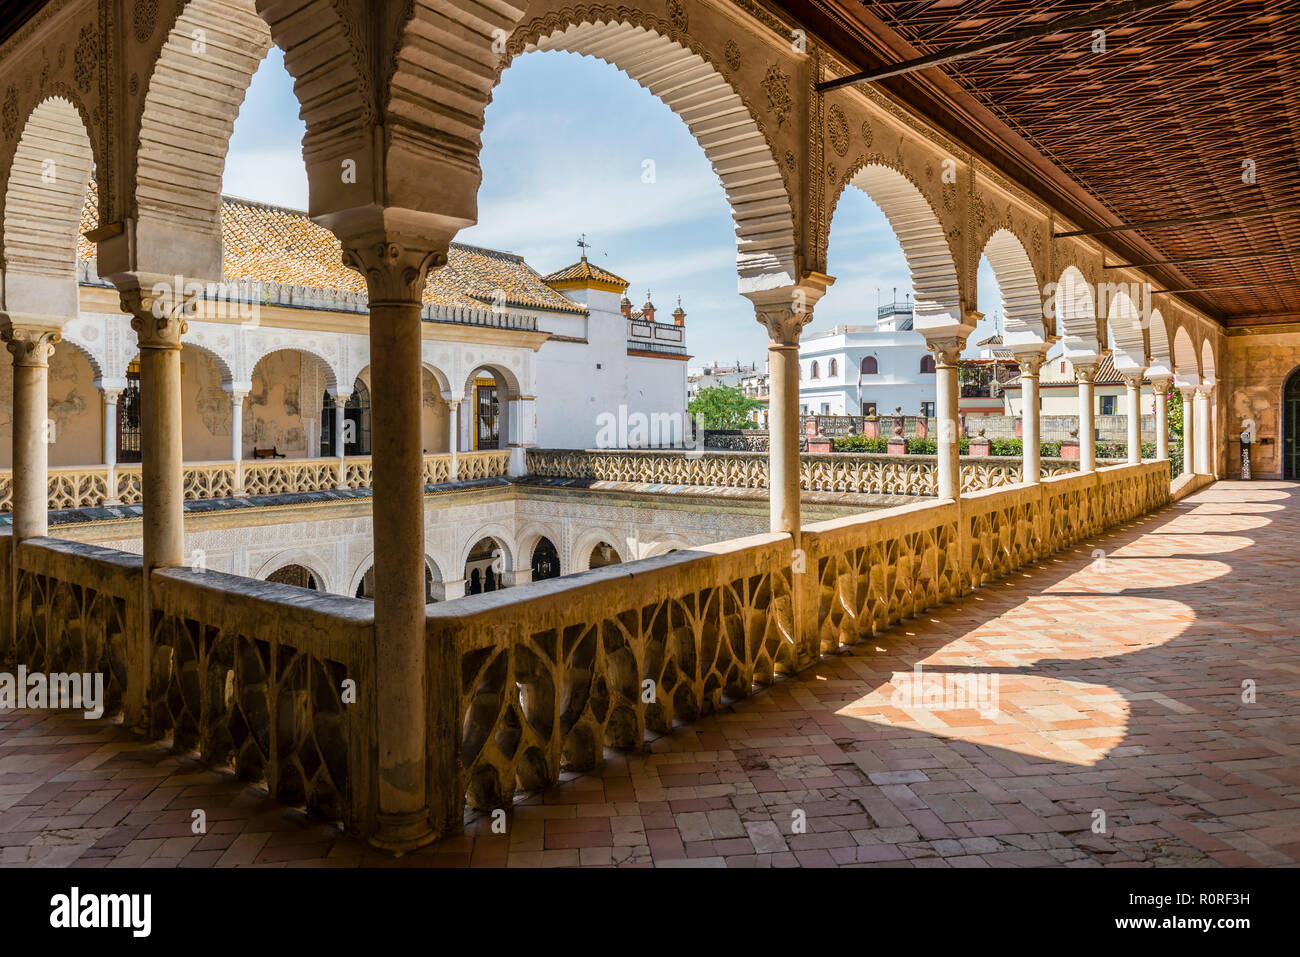 Arcade, City Palace, Andalusian Nobility Palace, Casa de Pilatos, Sevilla, Andalusia, Spain - Stock Image